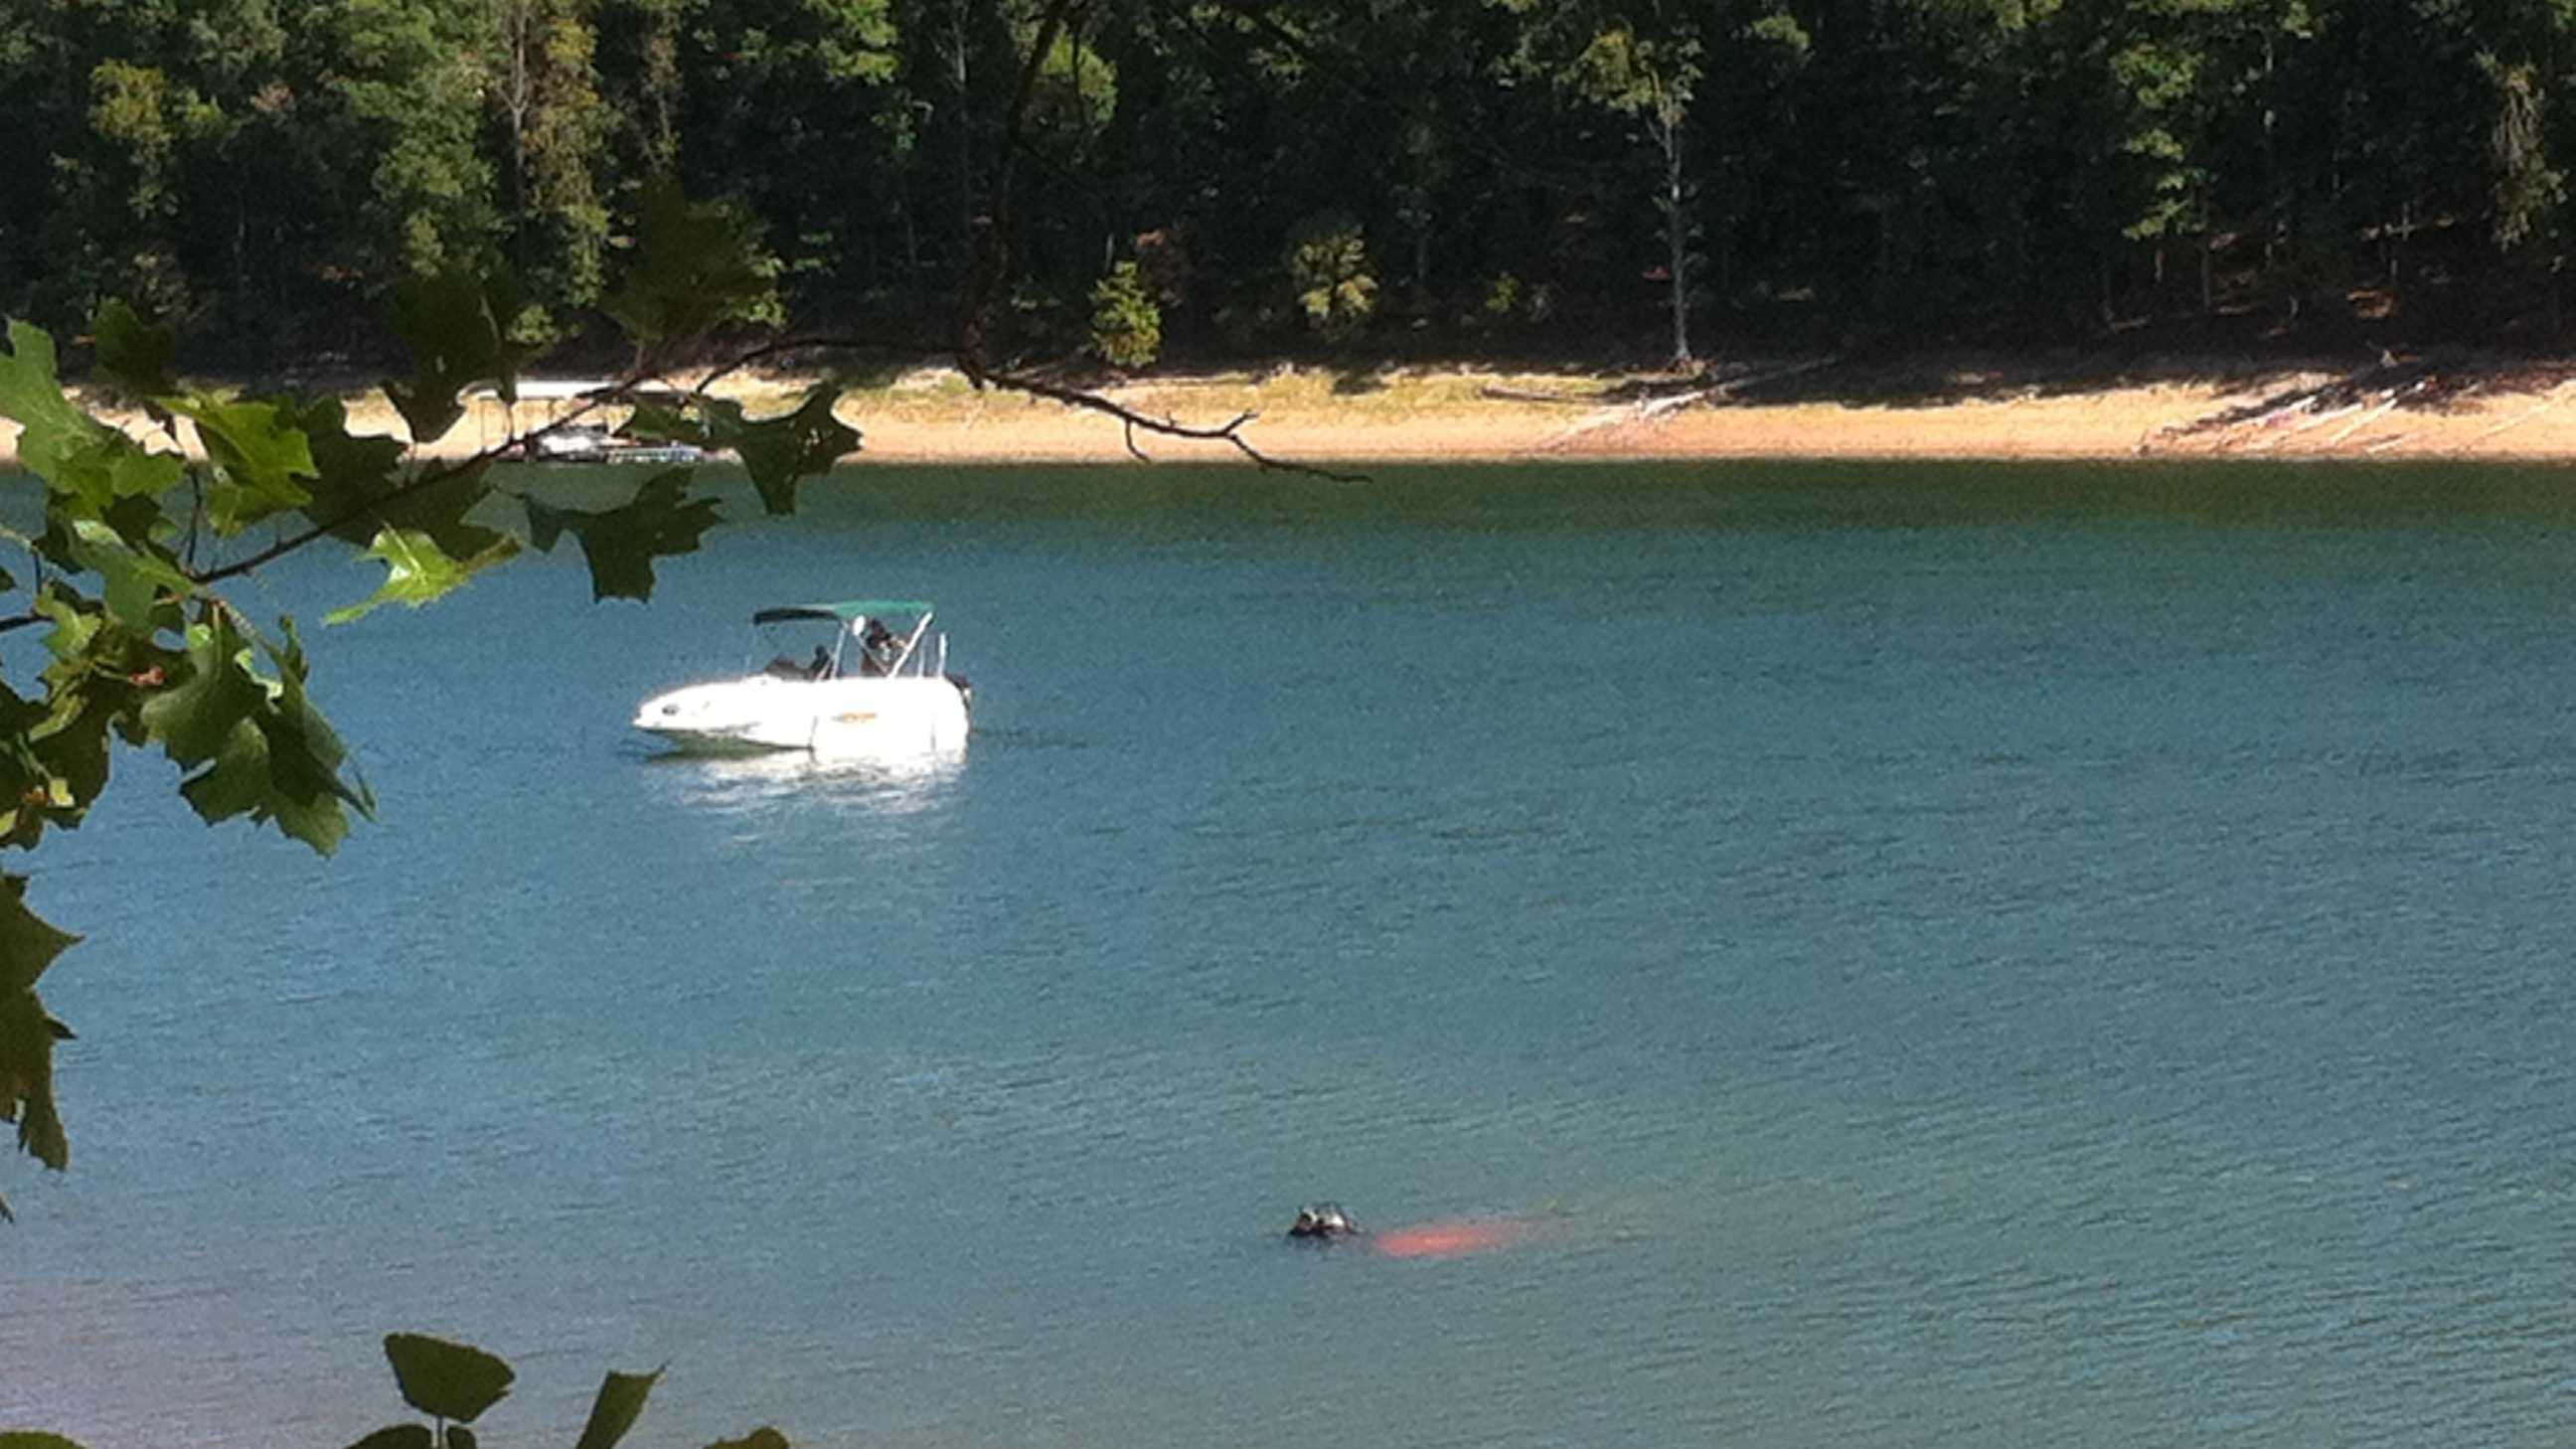 Dive team searching Beaver Lake for possible drowning victim